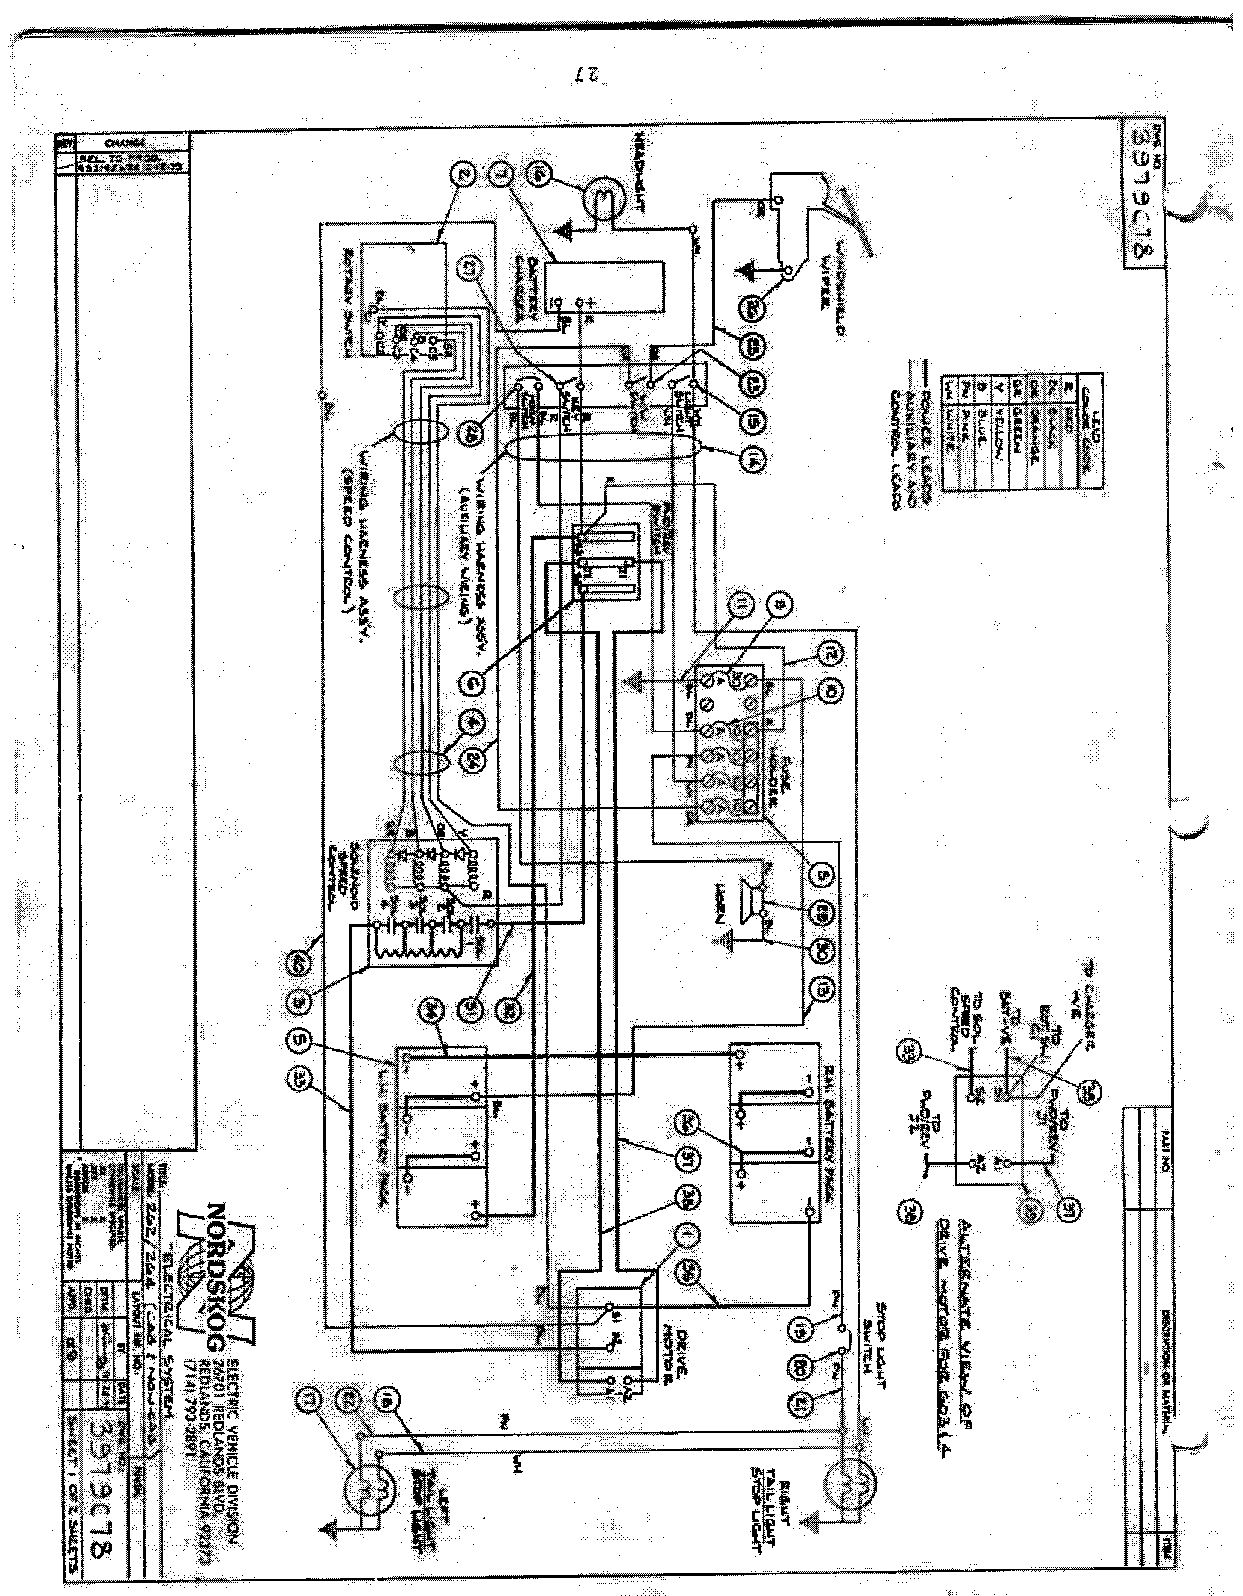 Tomberlin Emerge Wiring Parts Wiring Diagram Images